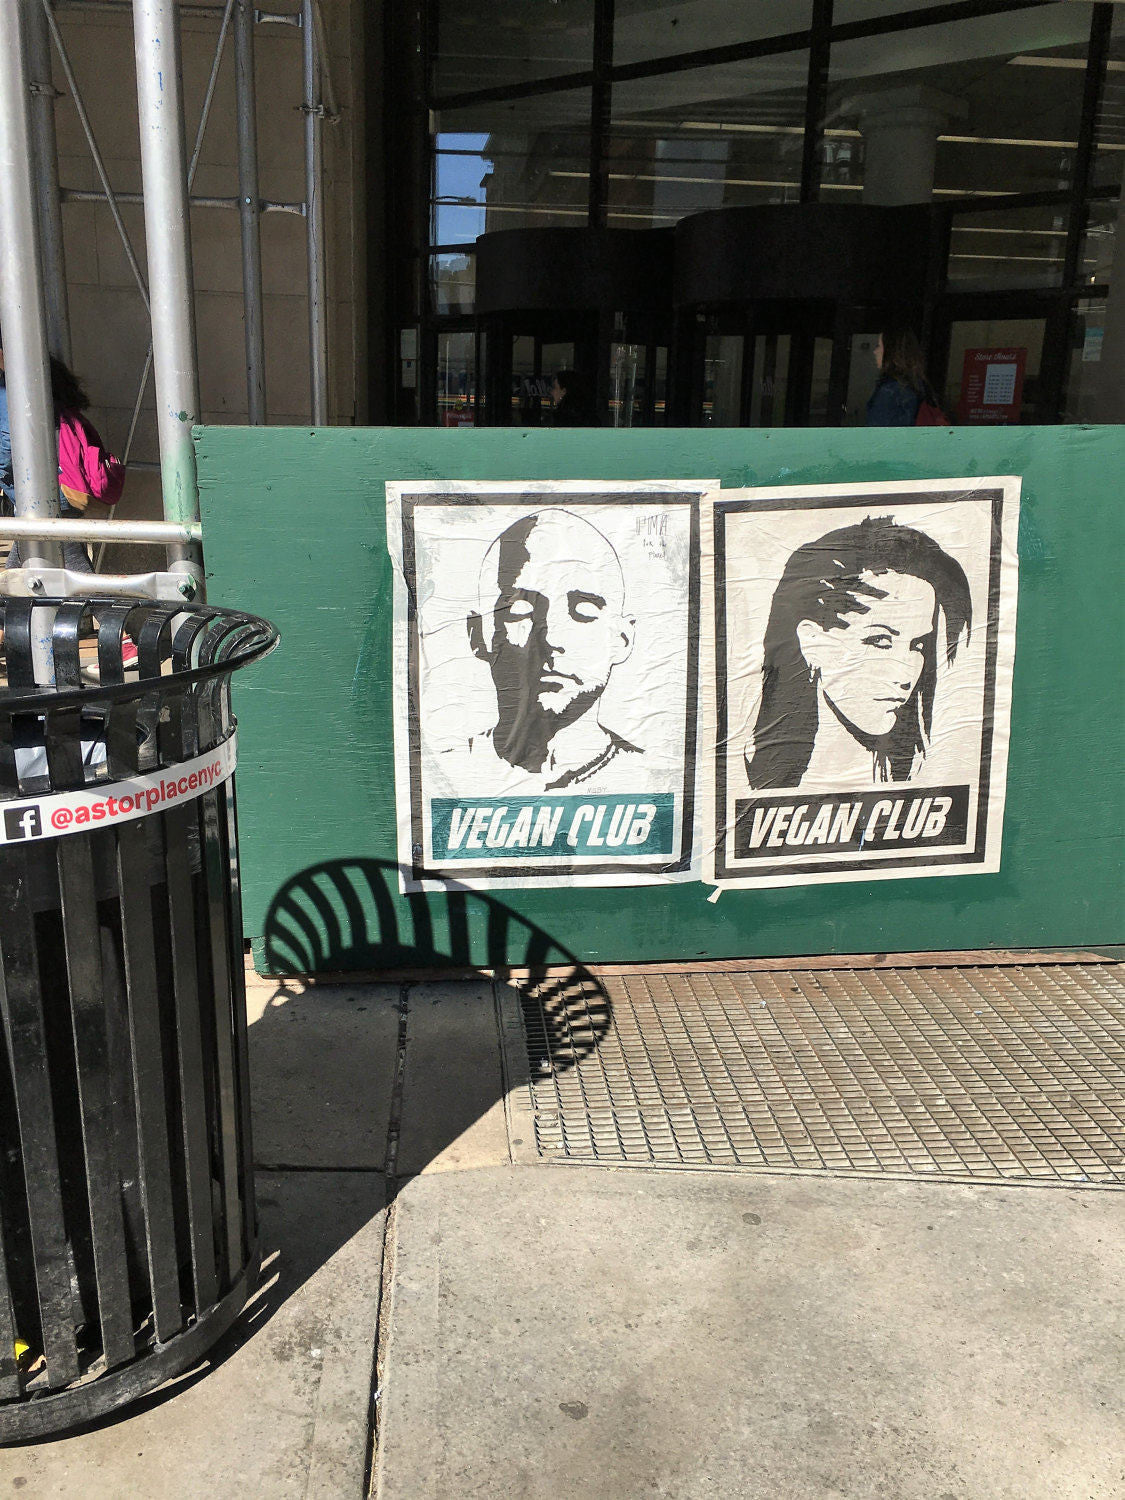 Framed on metal Street Art NewsPrint Poster 24x36 Vegan Club featuring Moby signed by LeFou